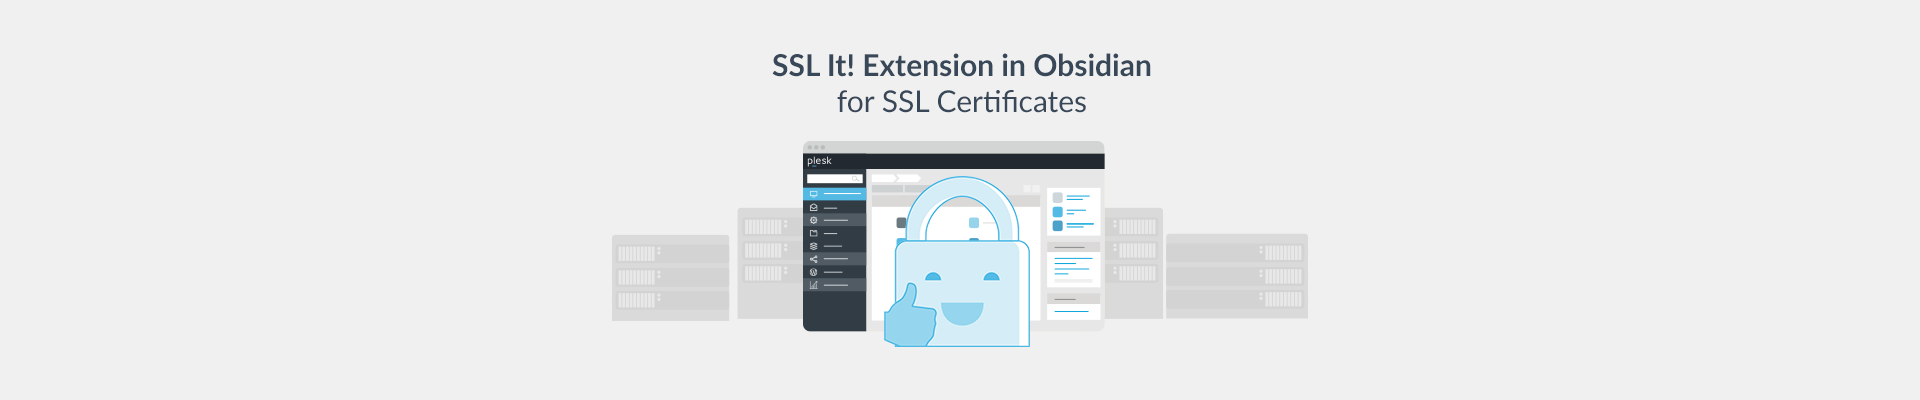 SSL It! Extension in Plesk Obsidian